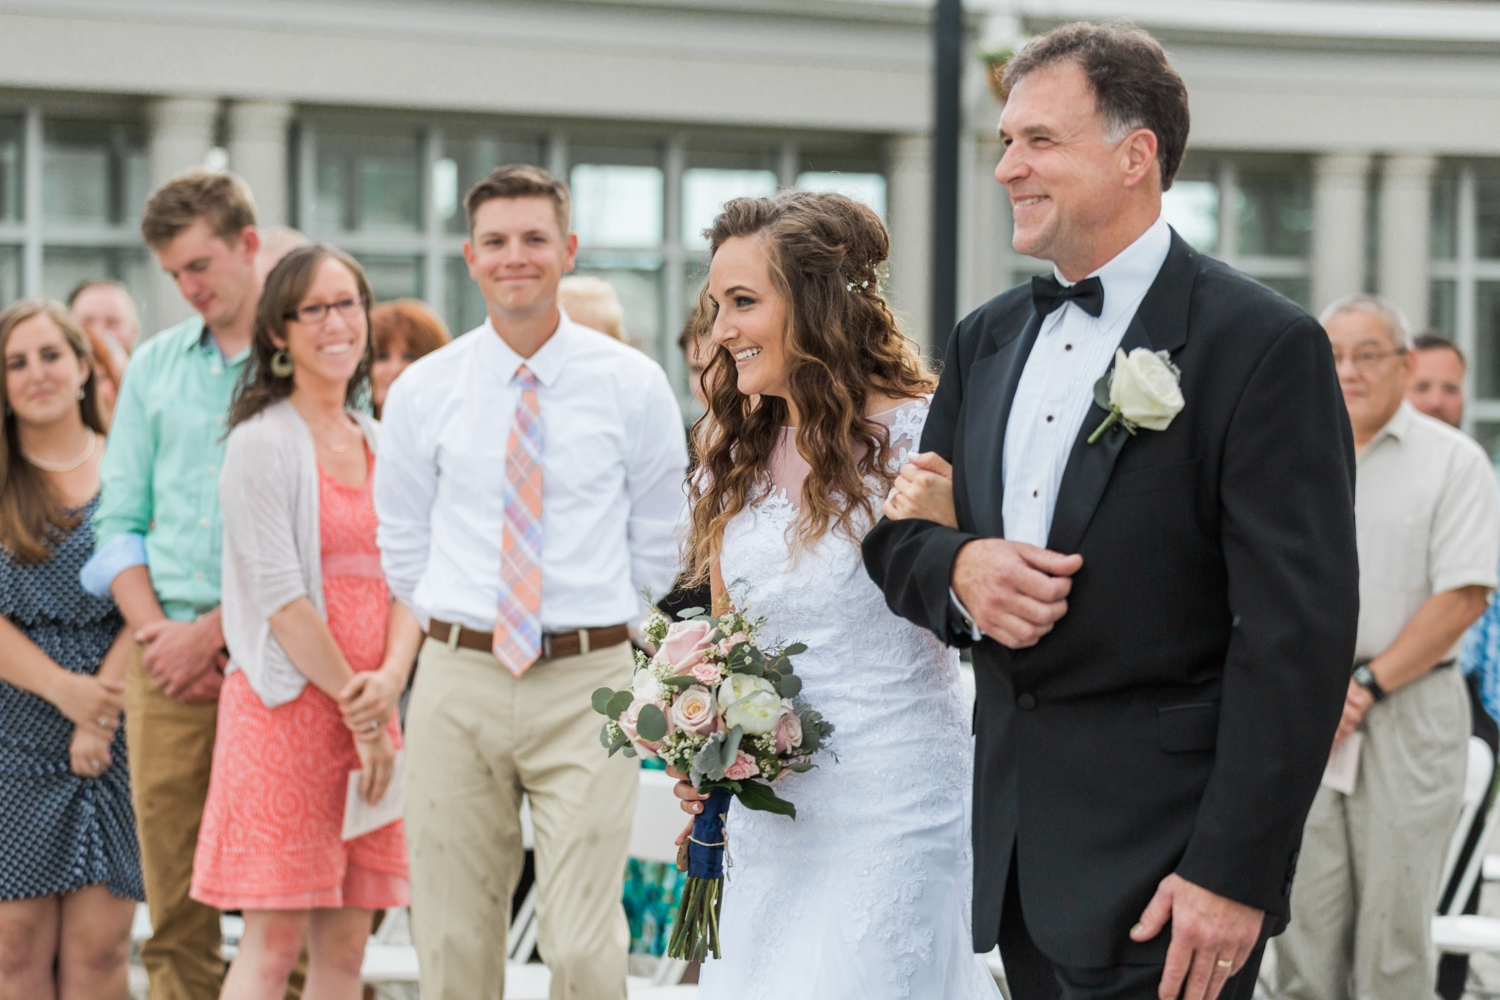 Community_Life_Center_Indianapolis_Indiana_Wedding_Photographer_Chloe_Luka_Photography_6947.jpg